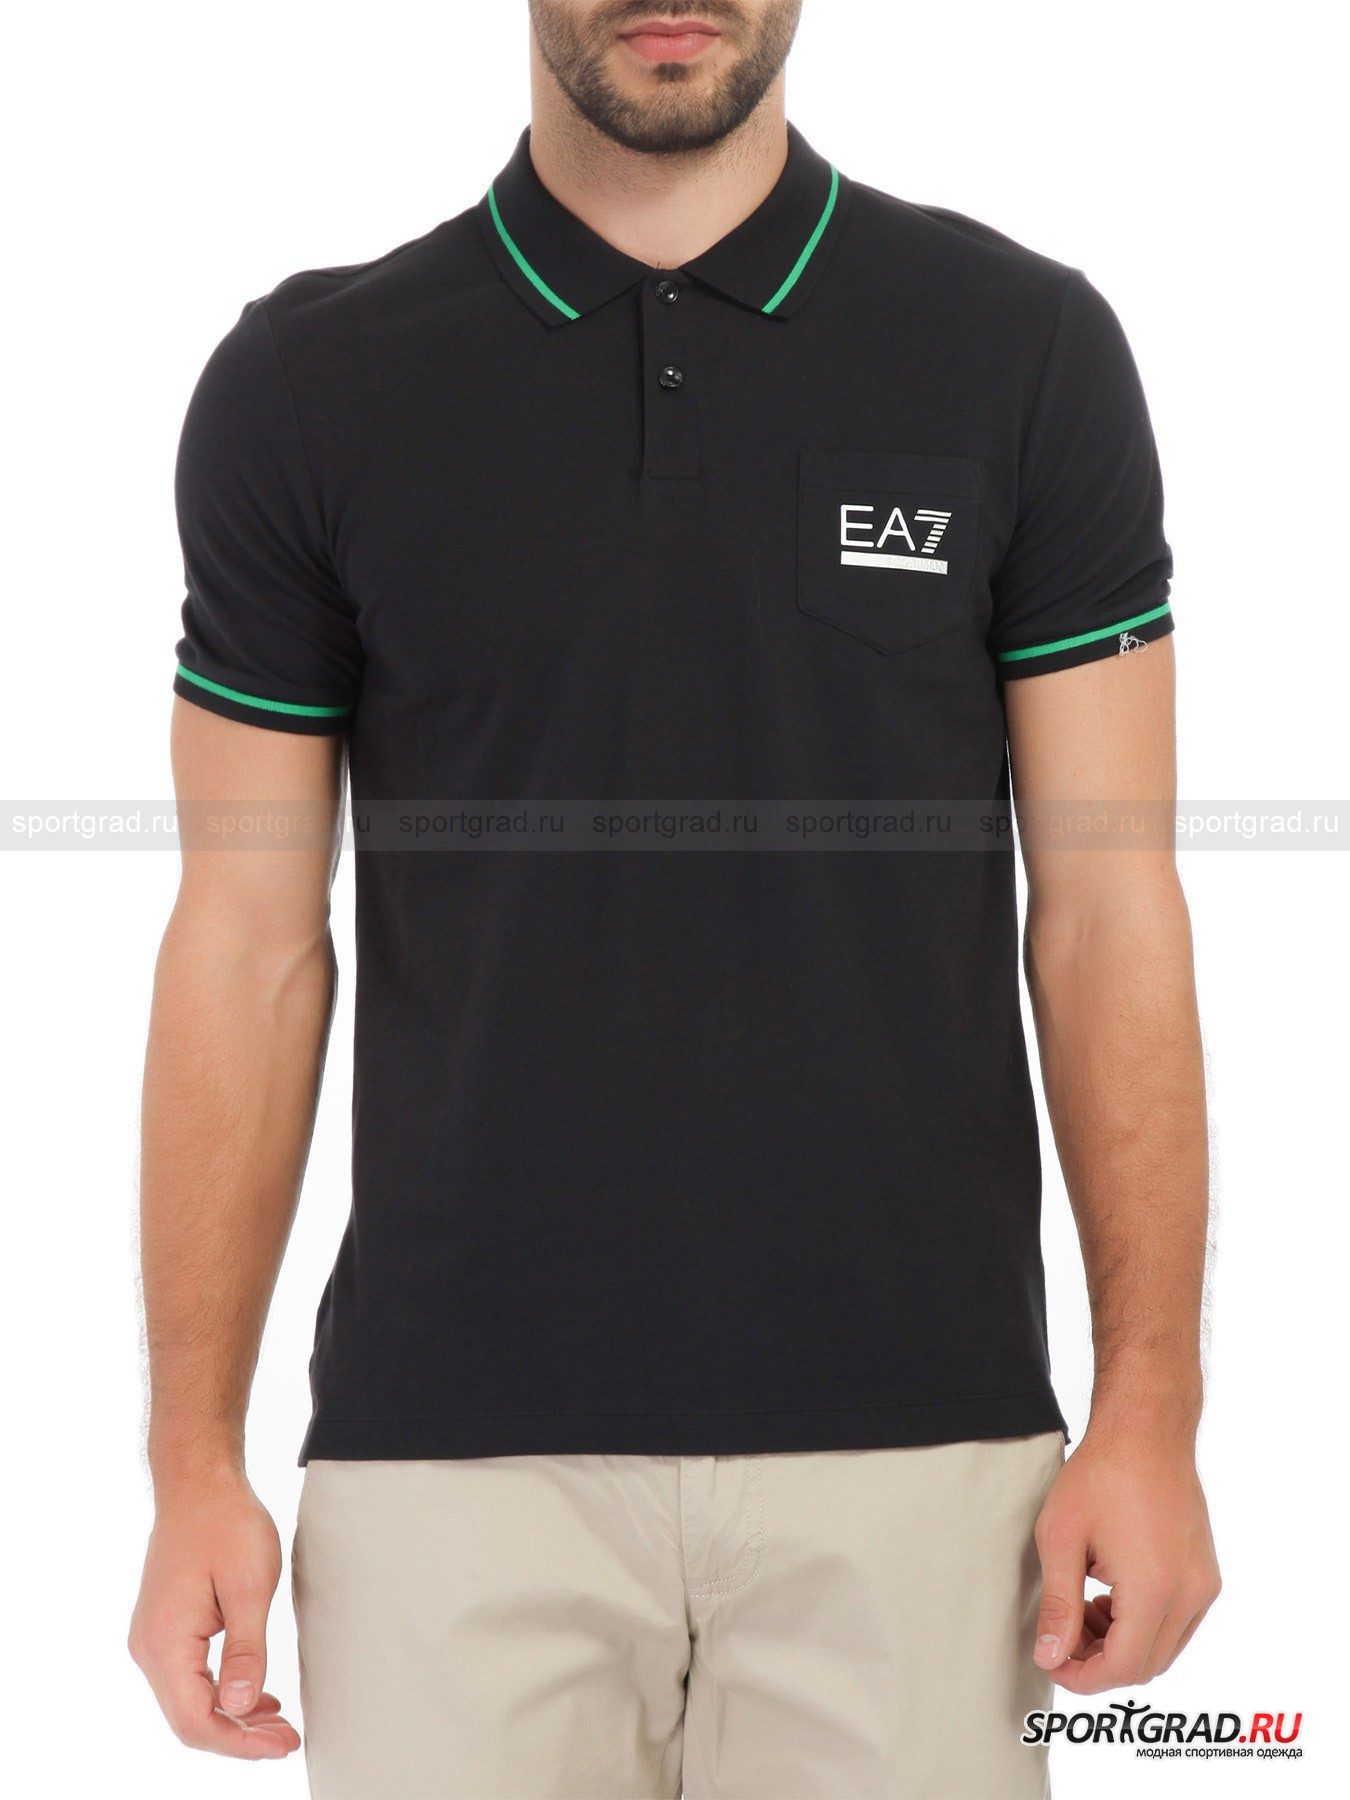 ���� ������� Train Evolution Polo Shirt EA7 Emporio Armani